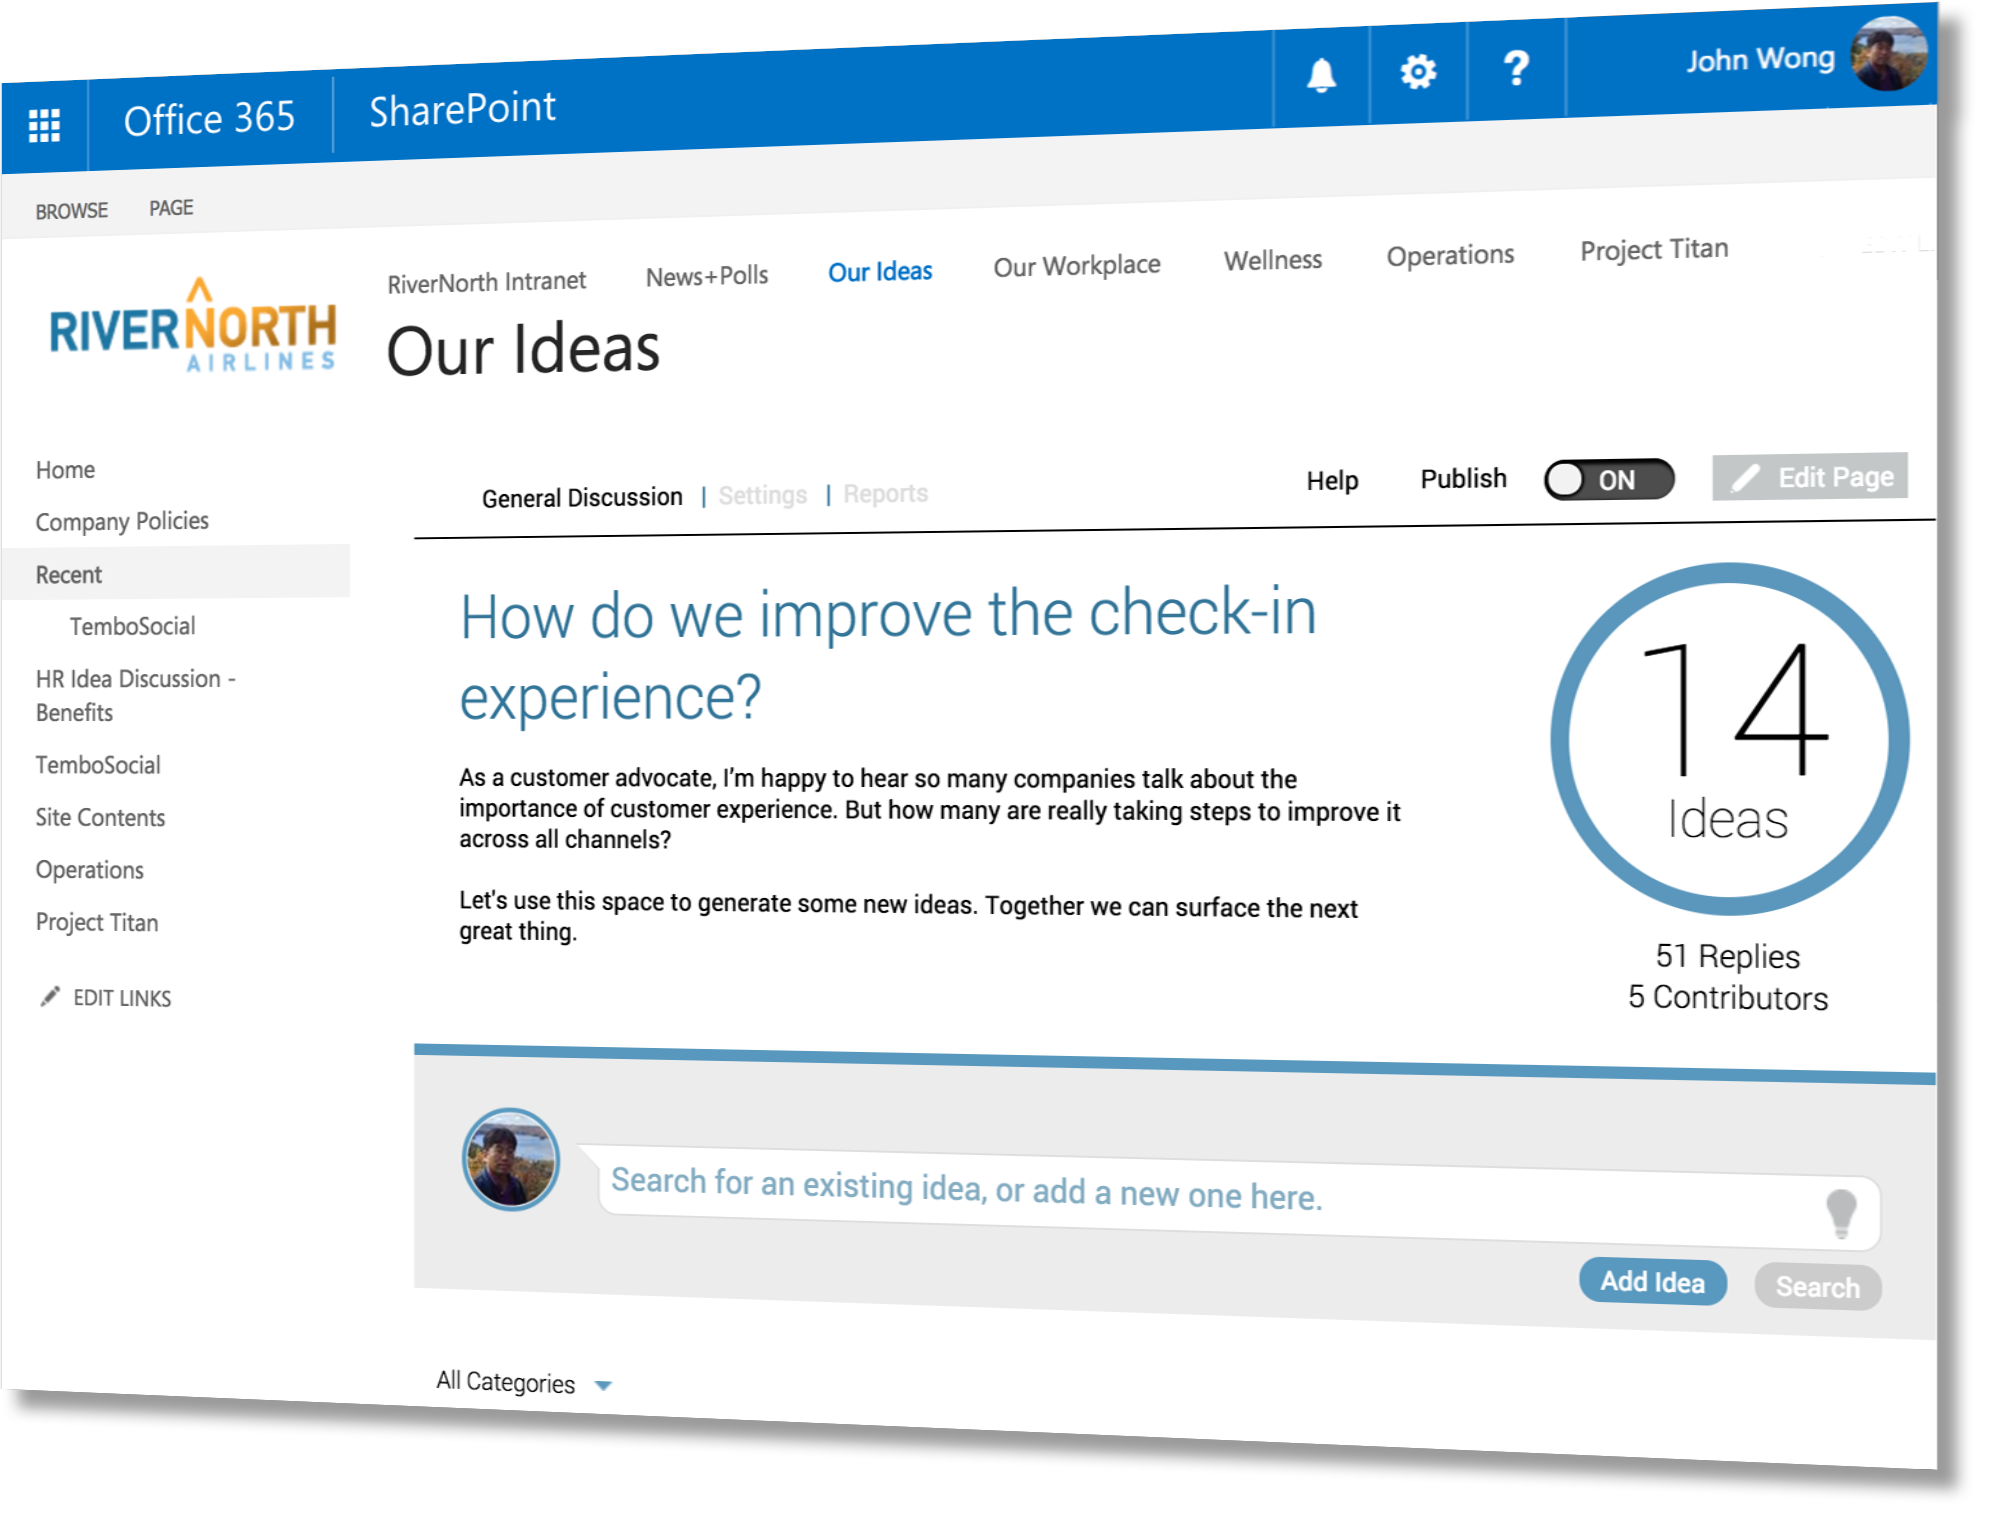 TemboSocial Ideas for SharePoint and Office 365